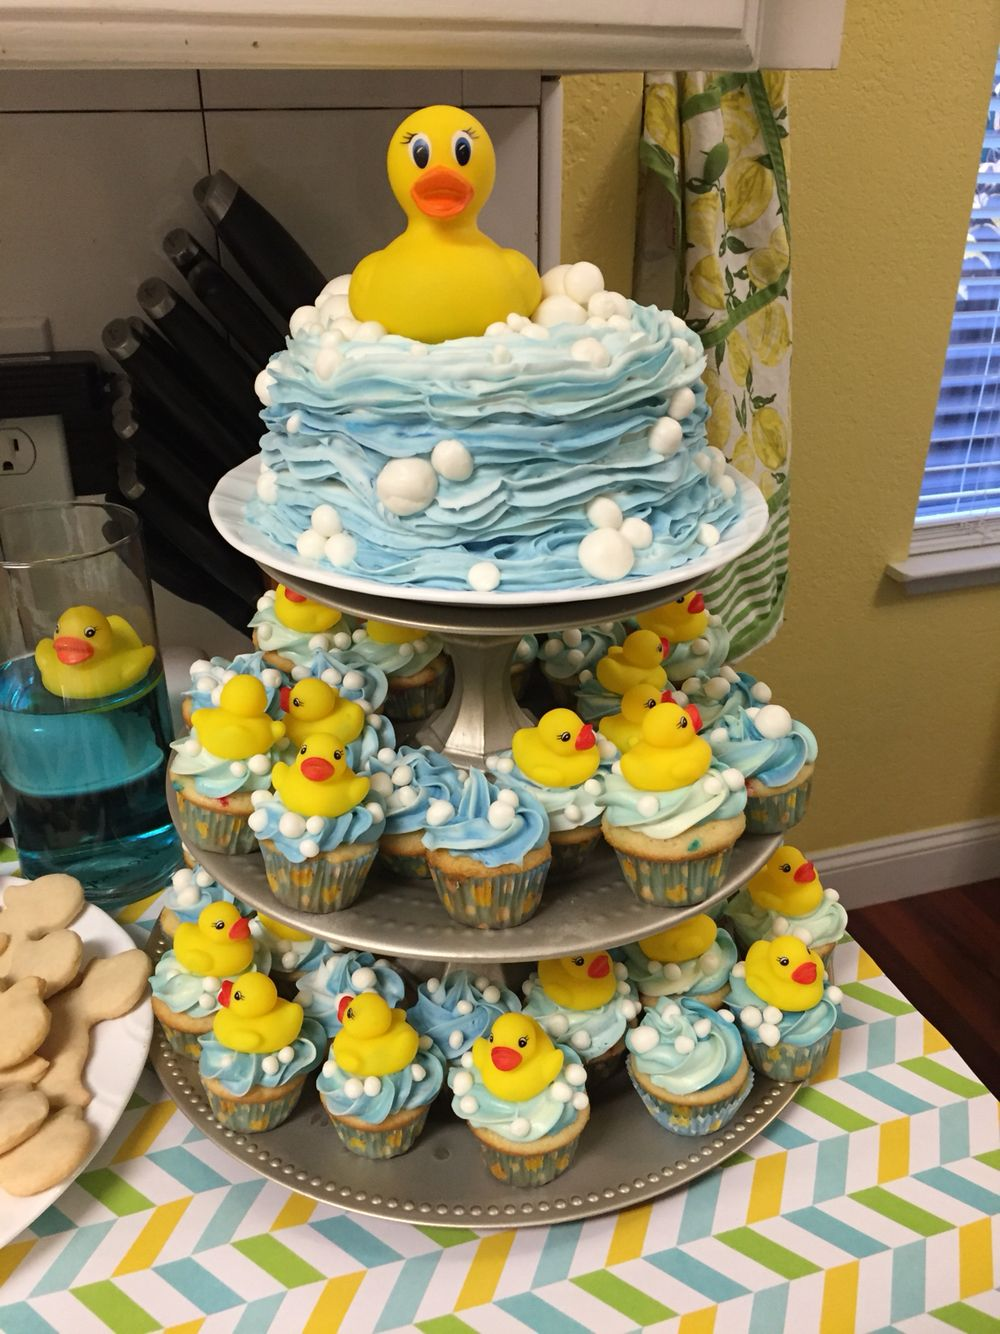 Admirable Rubber Ducky First Birthday Bubbles Are White Fondant Baby Funny Birthday Cards Online Inifodamsfinfo